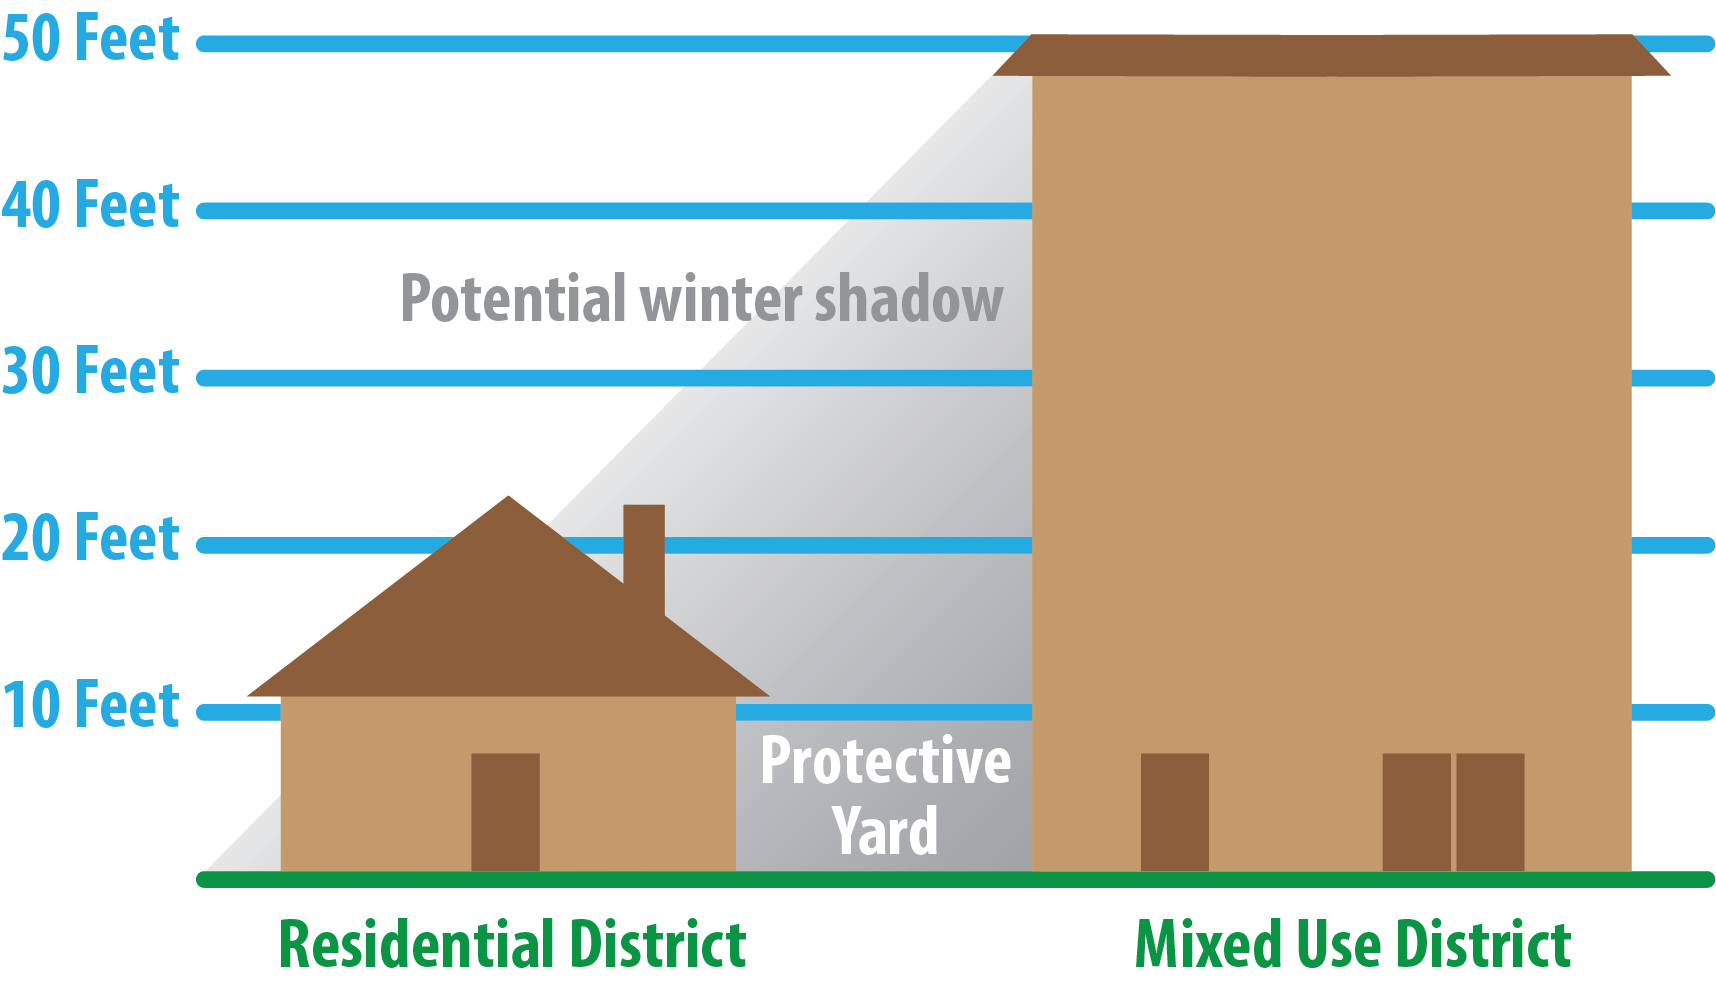 More zoning buffers could be voted away: more folks living in the shadows.